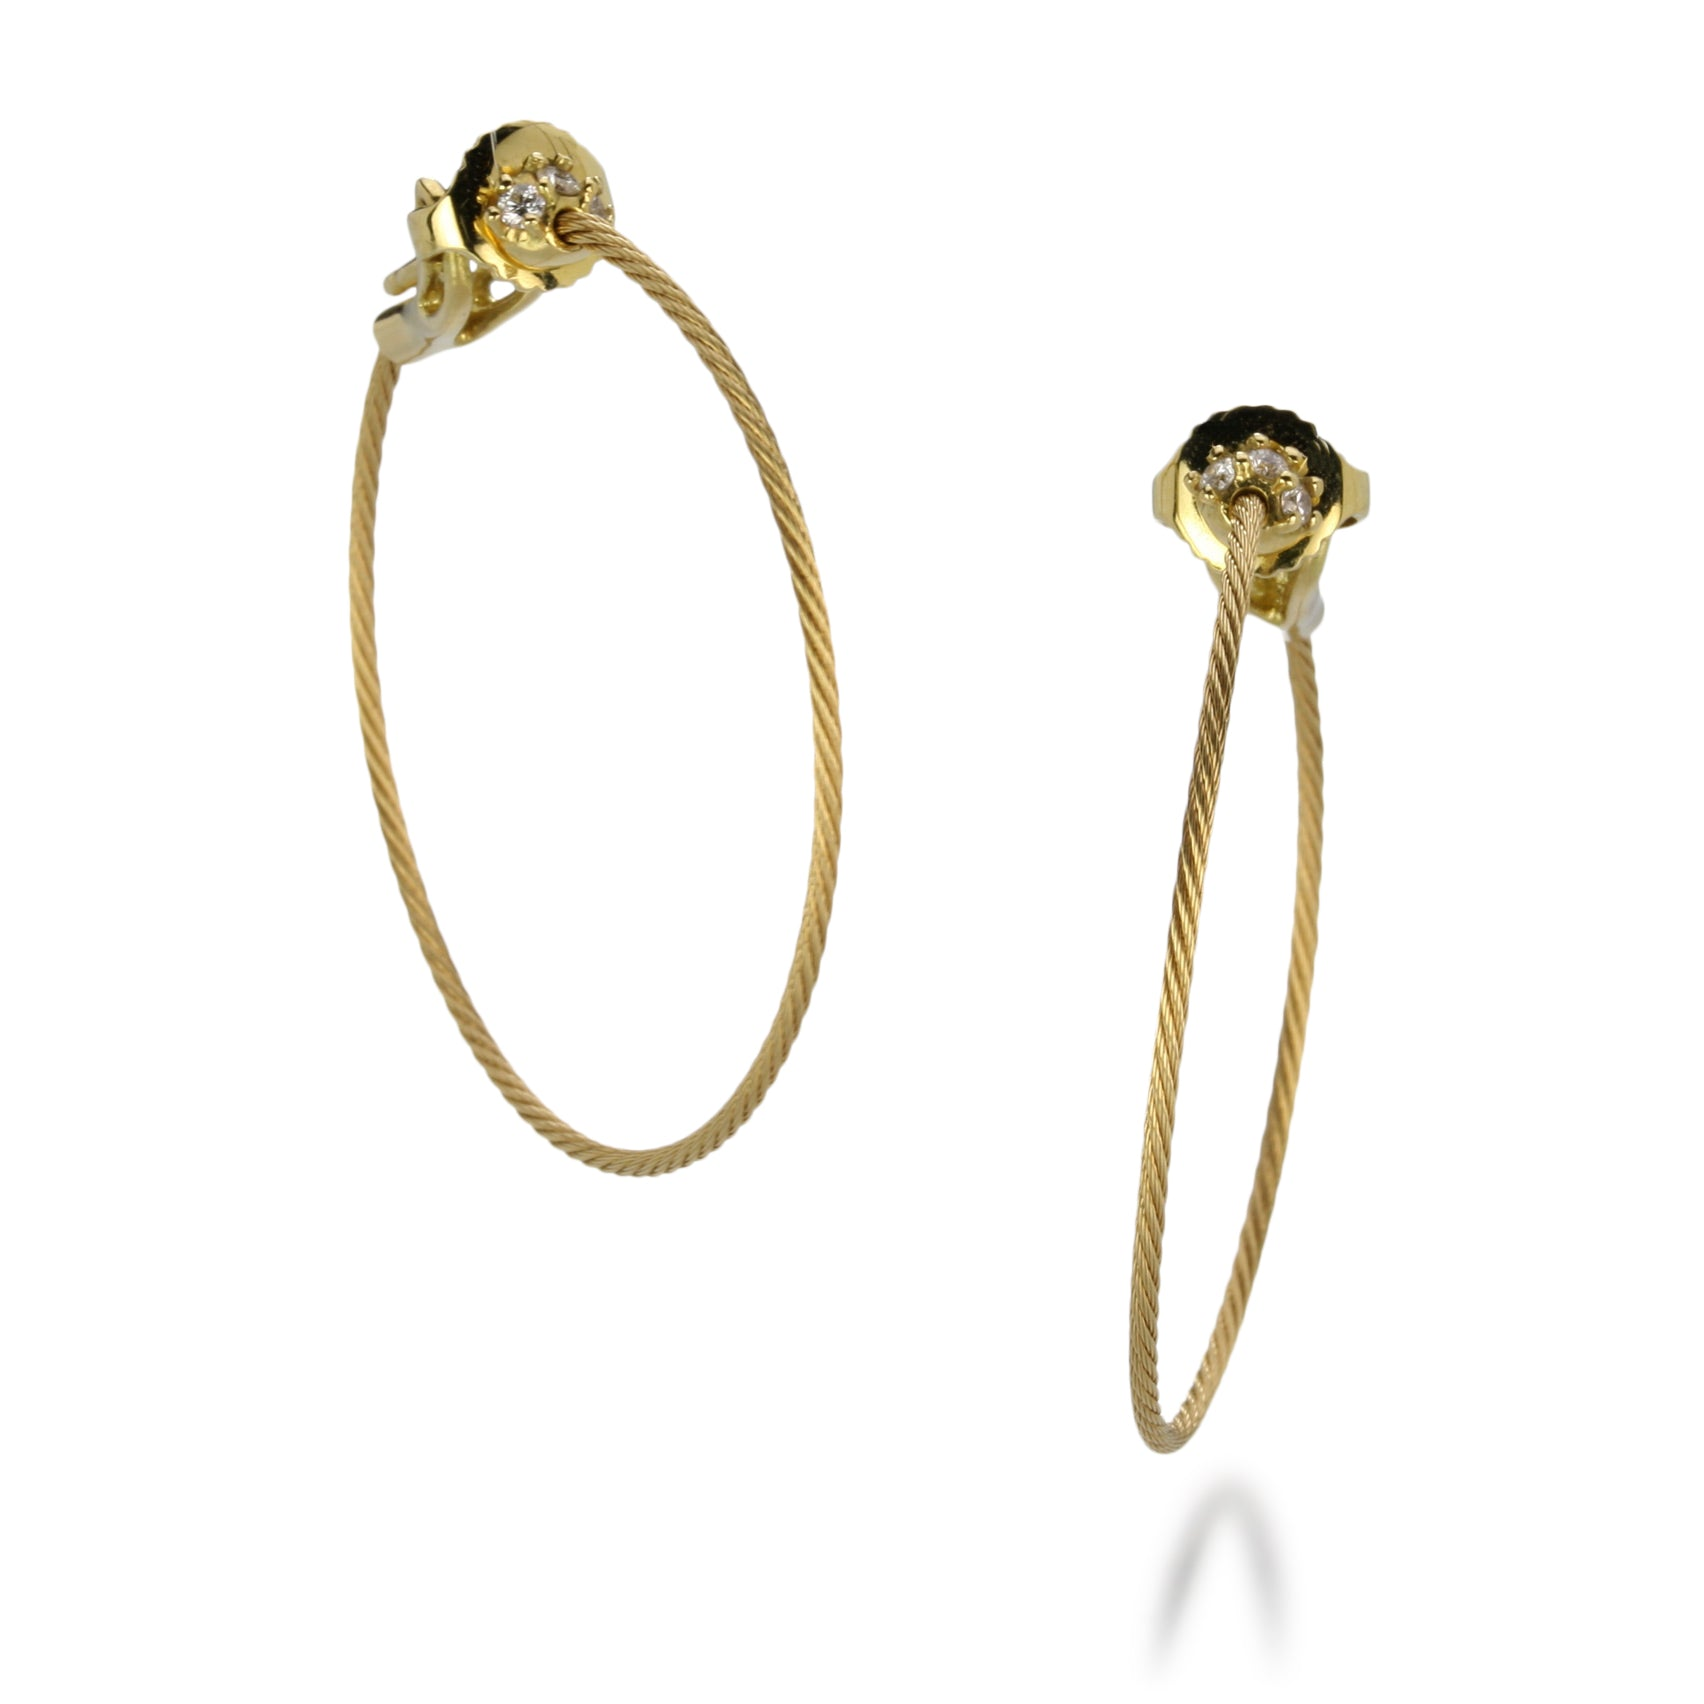 Paul Morelli Wire Hoops with Diamonds | Quadrum Gallery